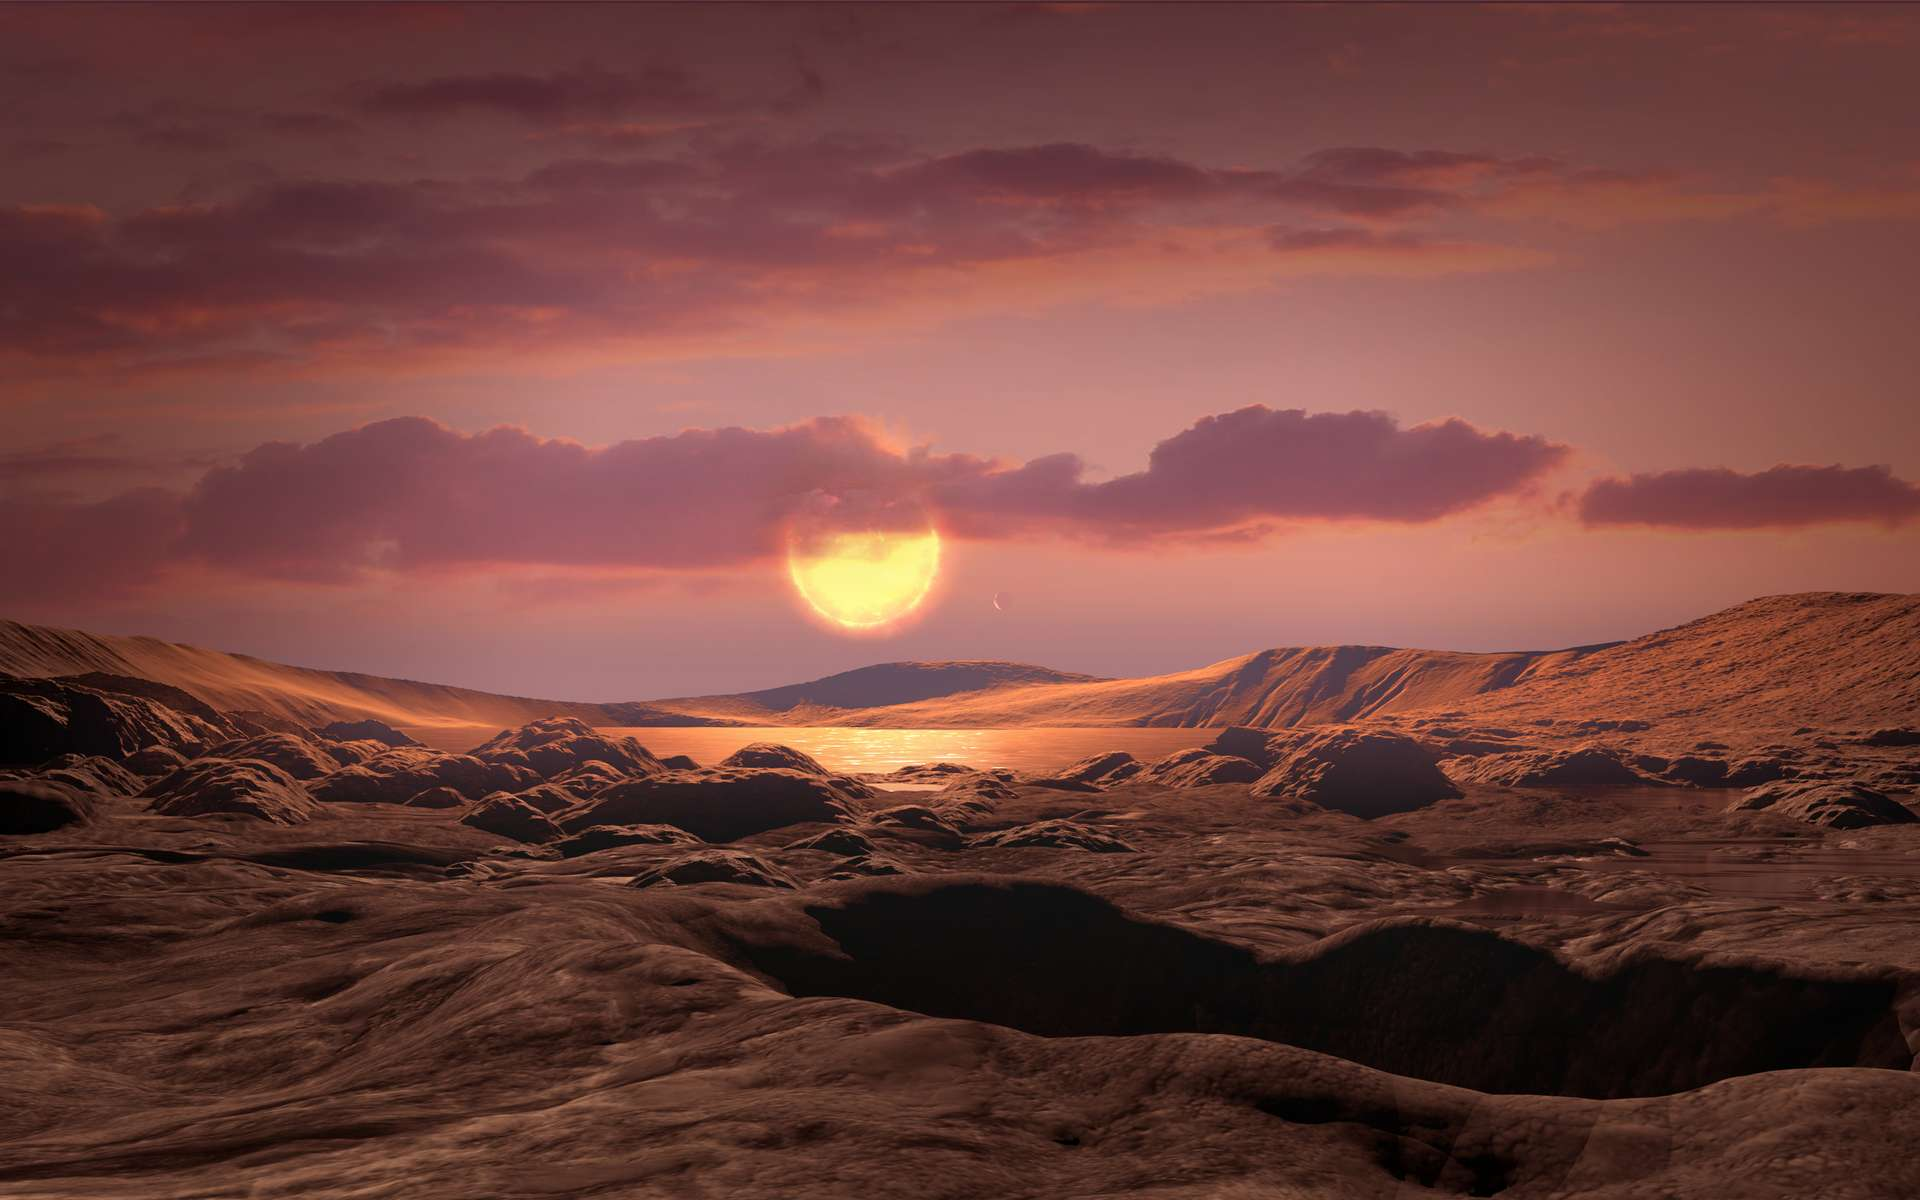 Illustration de la surface de Kepler-1649 c. © Nasa, Ames Research Center, Daniel Rutter